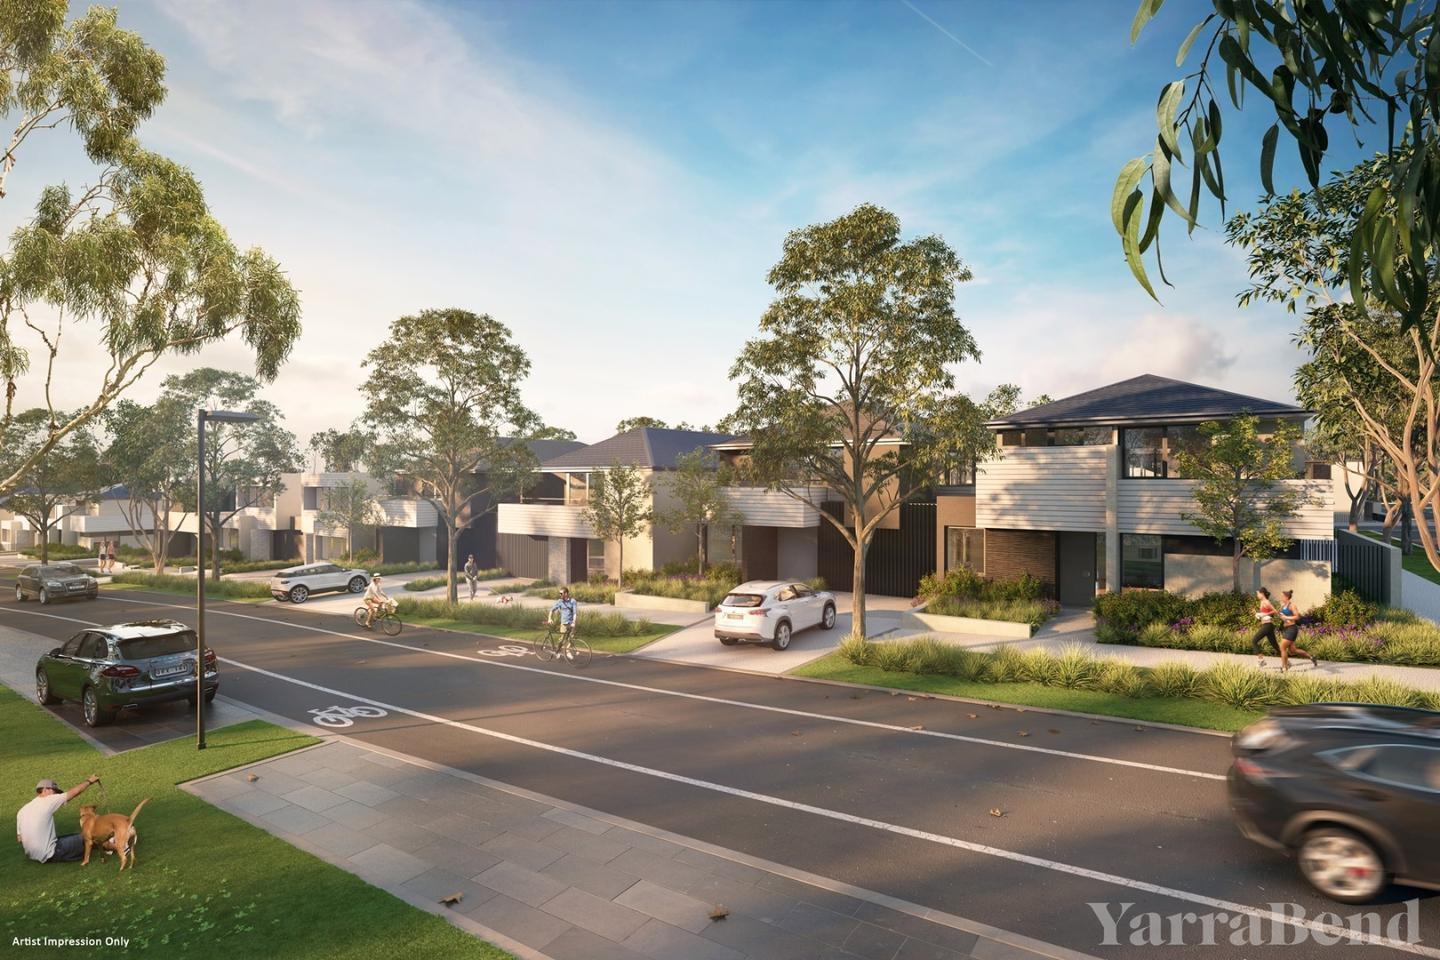 Yarrabend's streets will have a kerbless design that is said to be inspired by Scandinavian bike-friendly cities